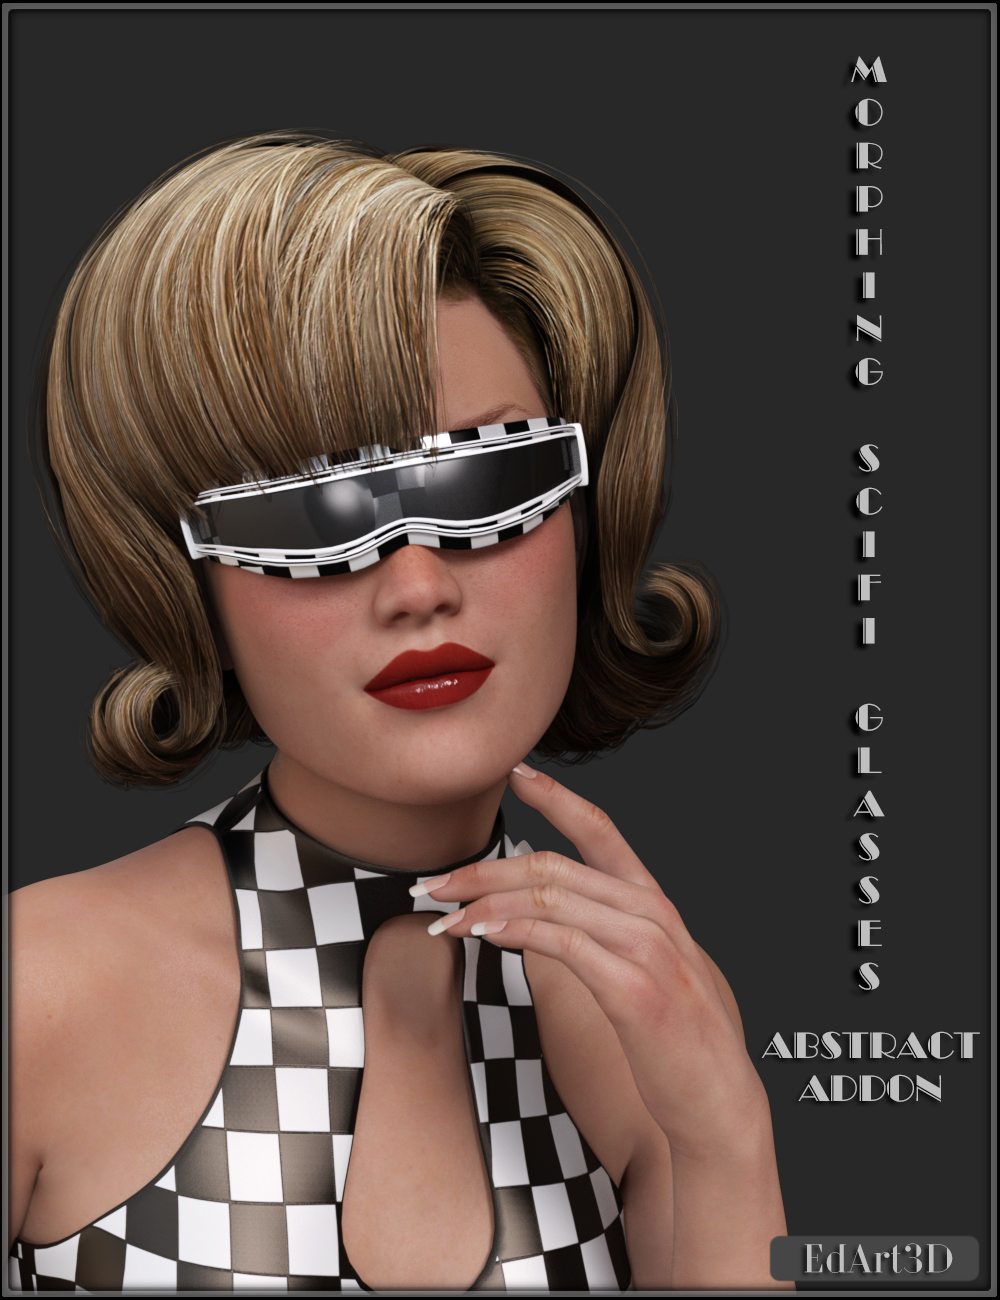 Morphing SciFi Glasses Abstract AddOn